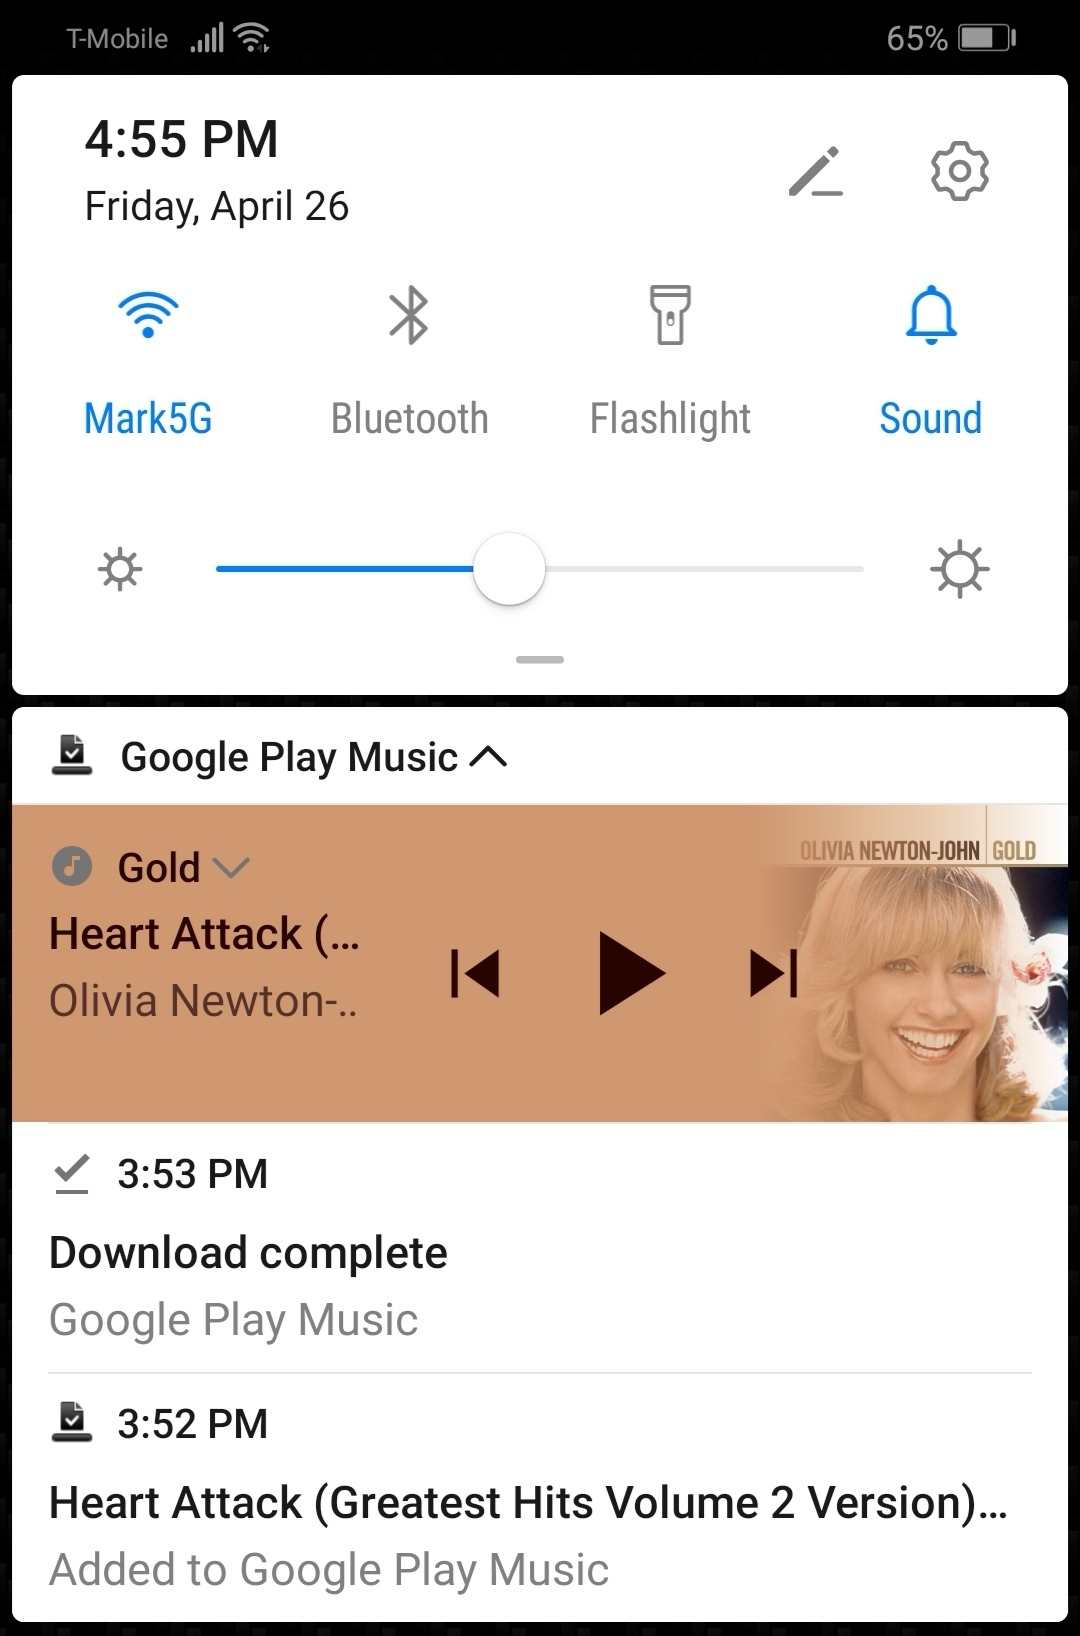 Downloading song from Google Play Music to assign as ringtone on P30